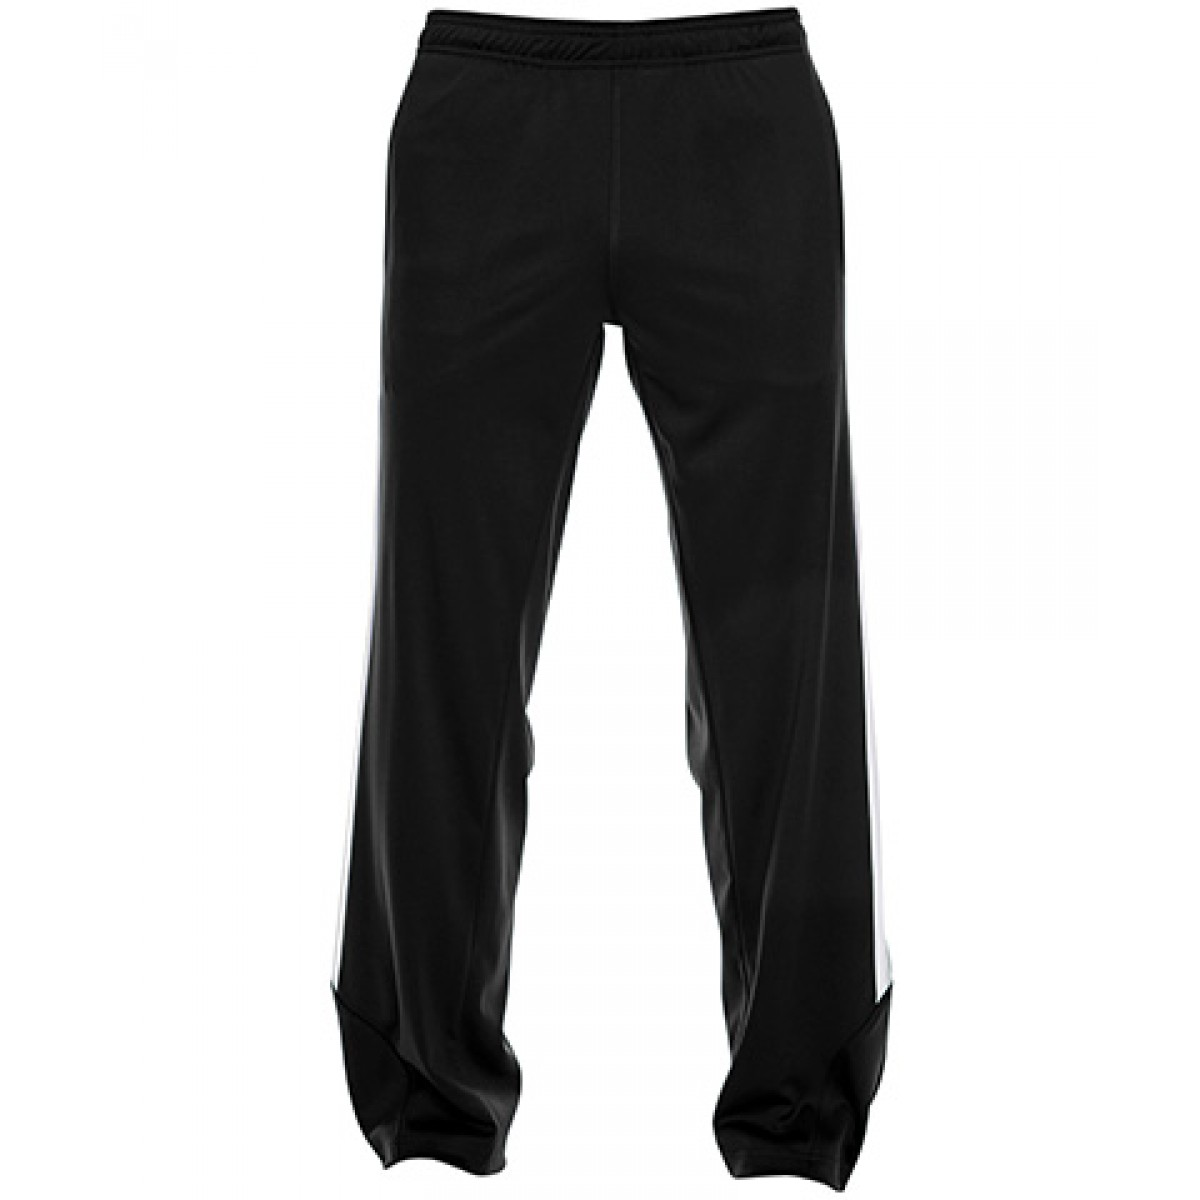 Men's Elite Performance Fleece Pant-Black-XS